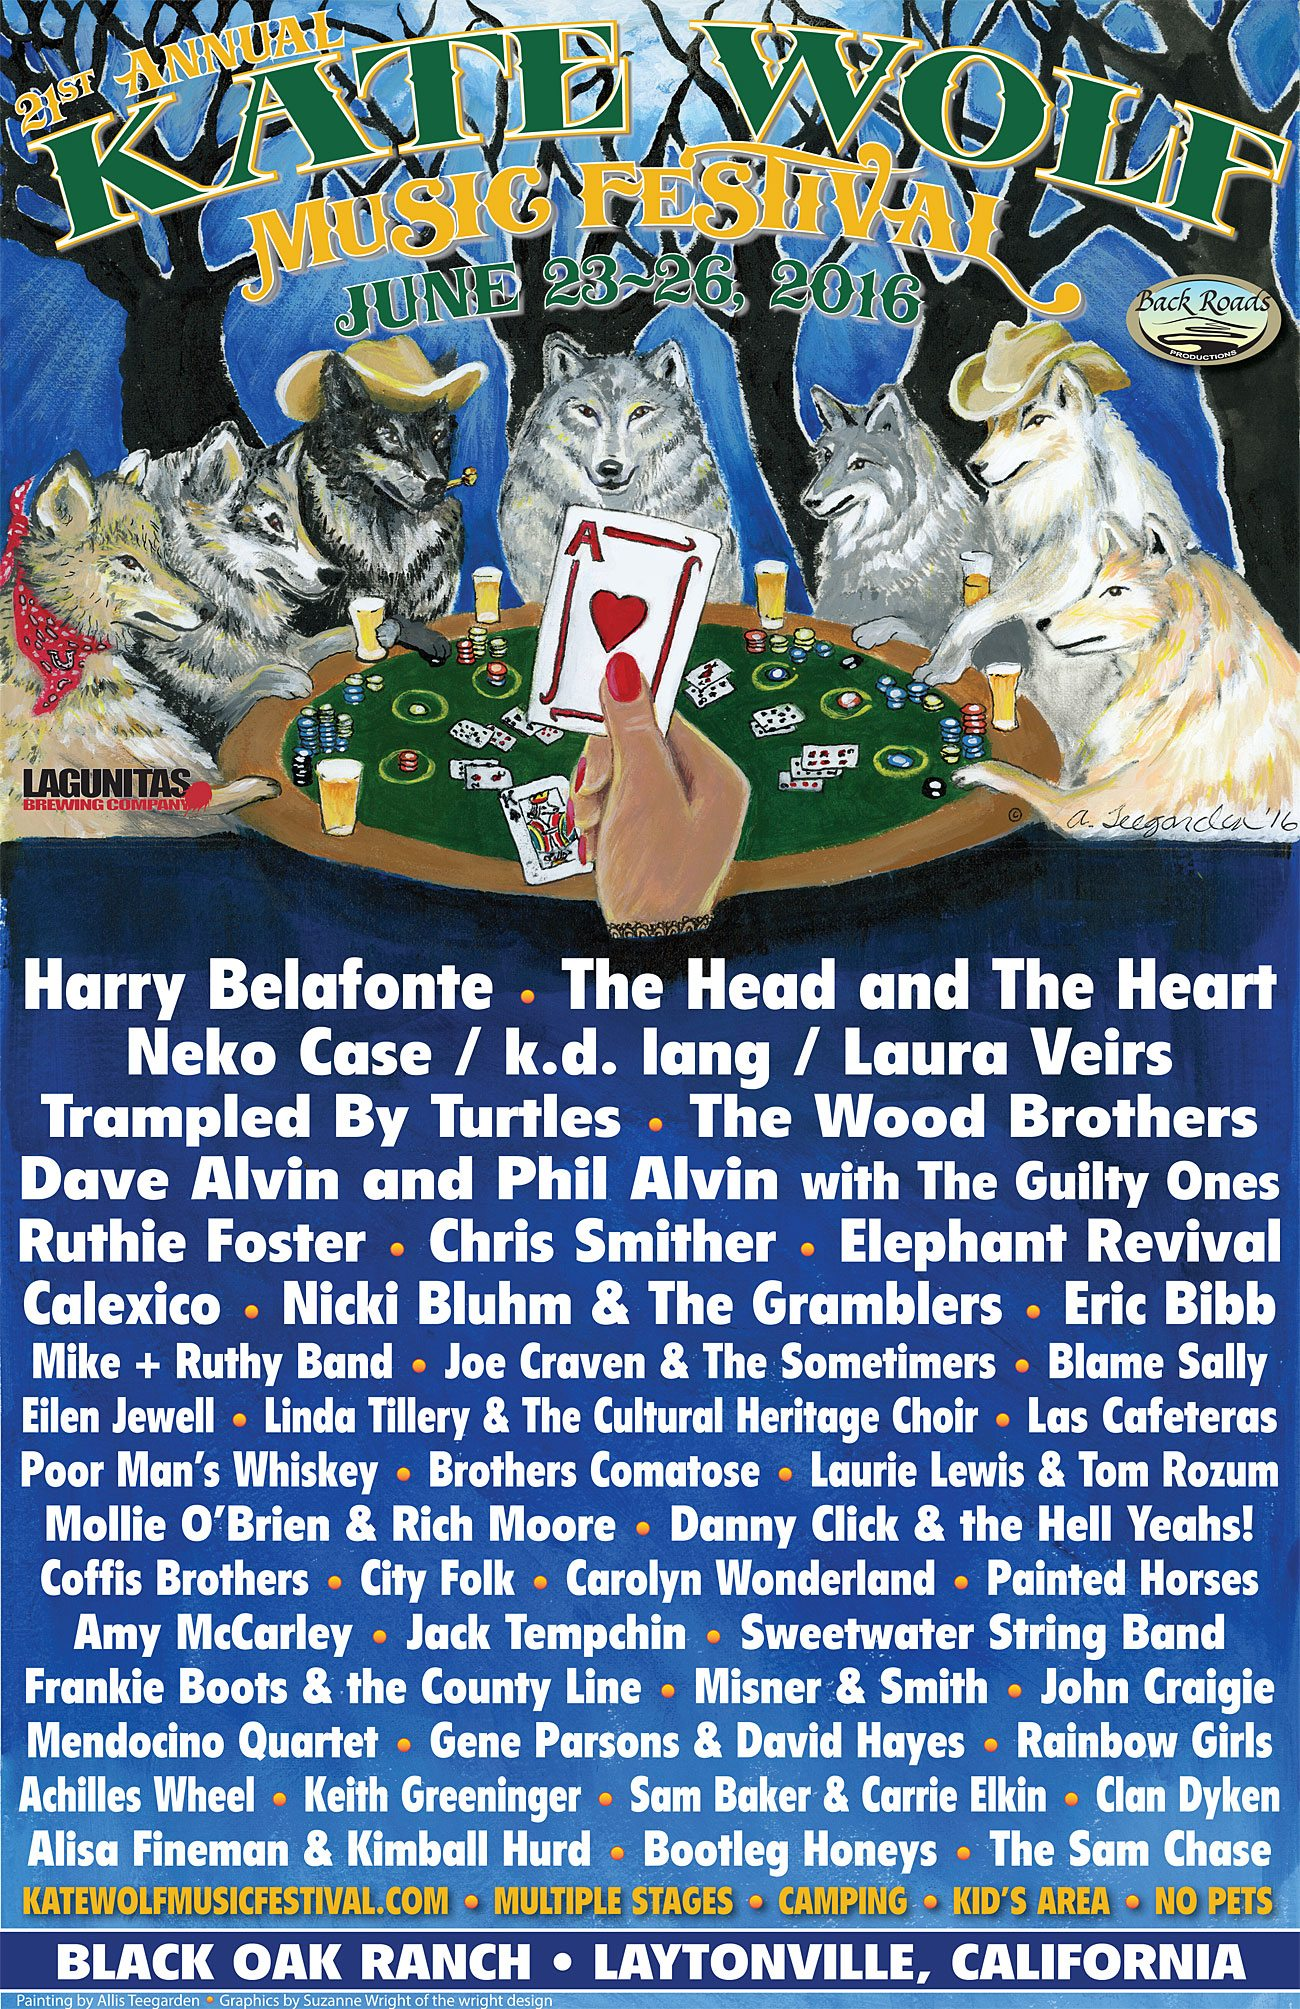 16-Kate-Wolf-Music-Festival-poster